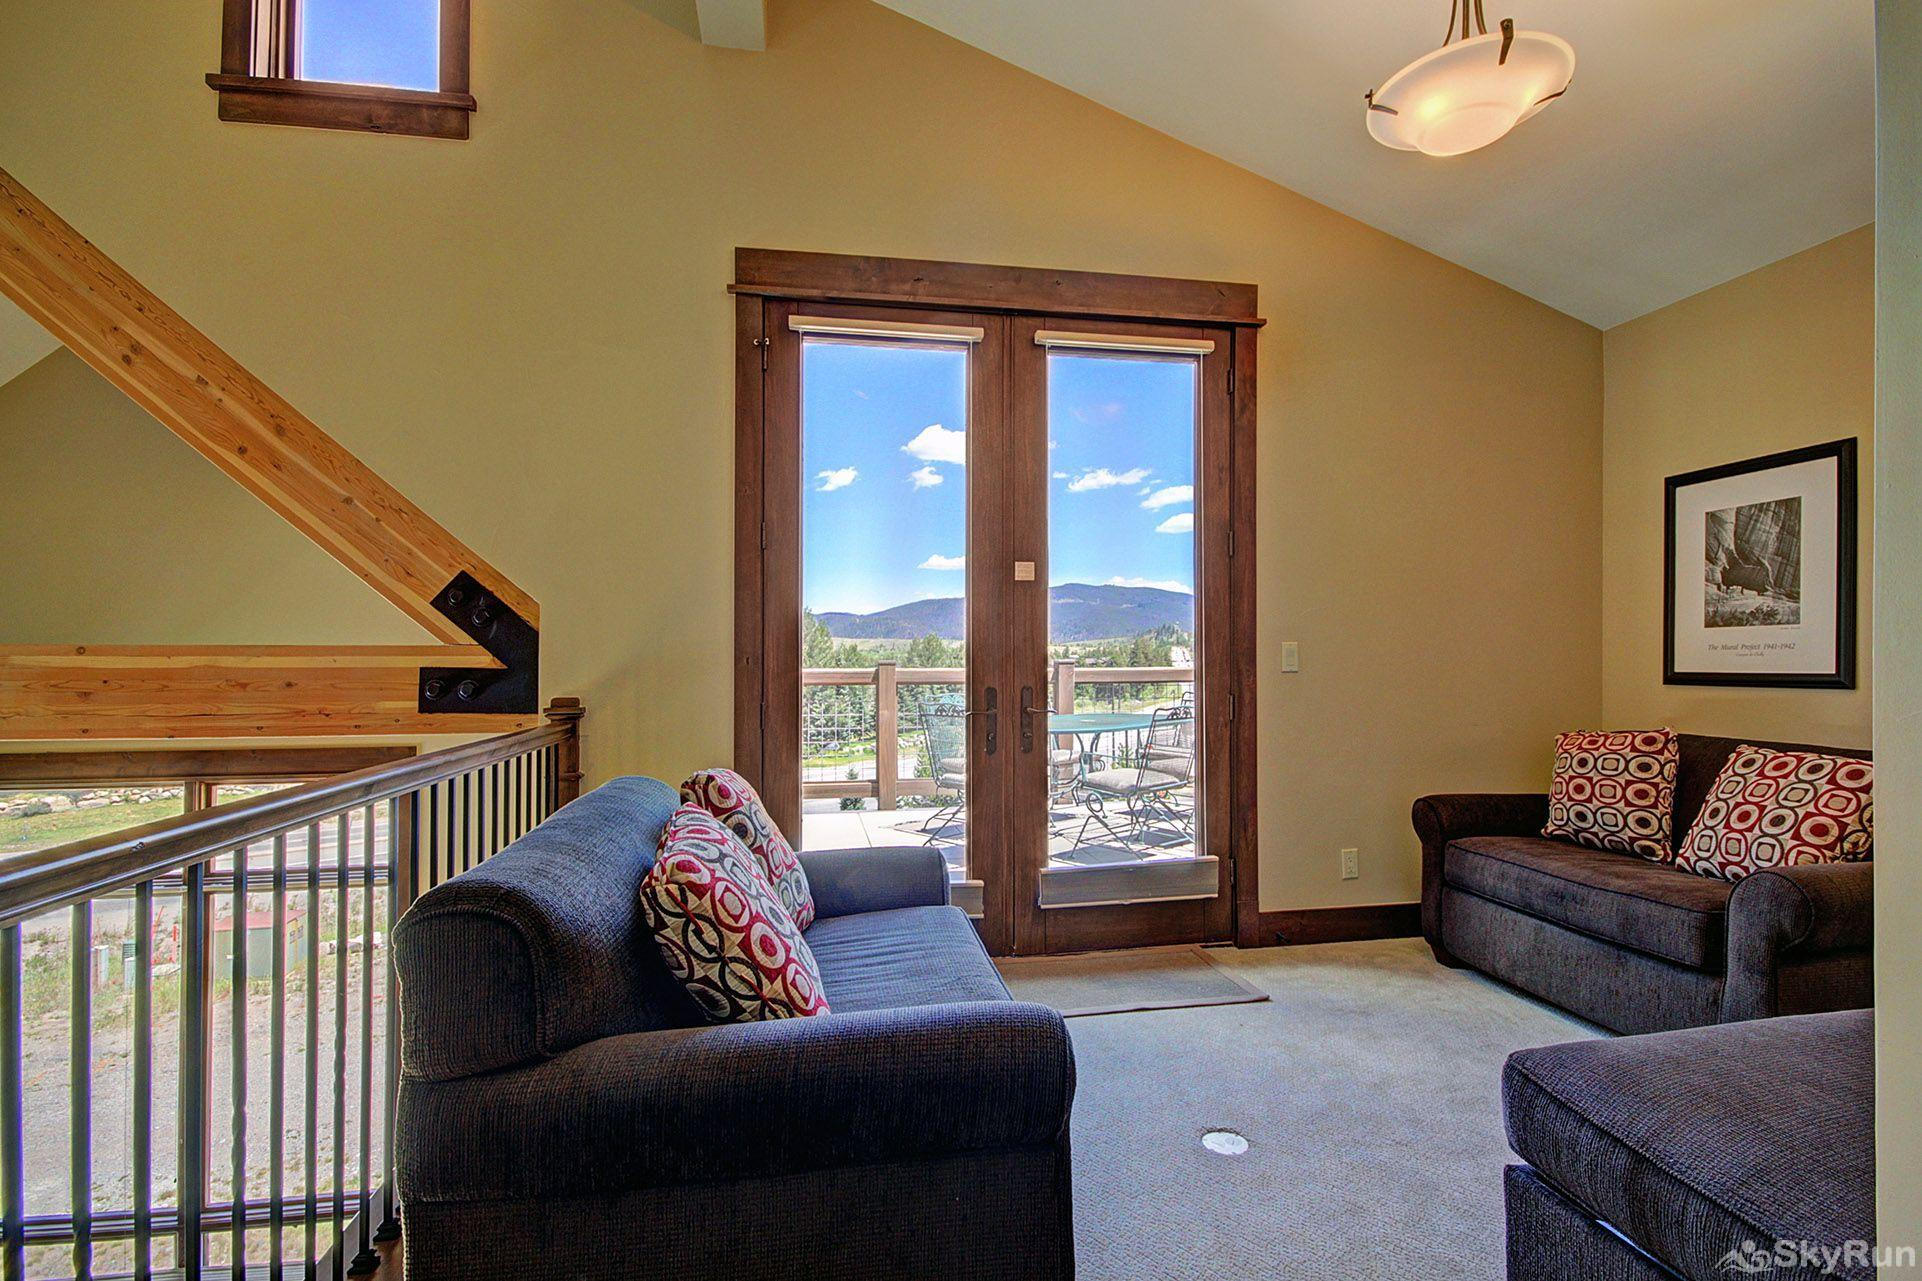 B201 WaterTower Place 3BR 3BA Loft with lake views